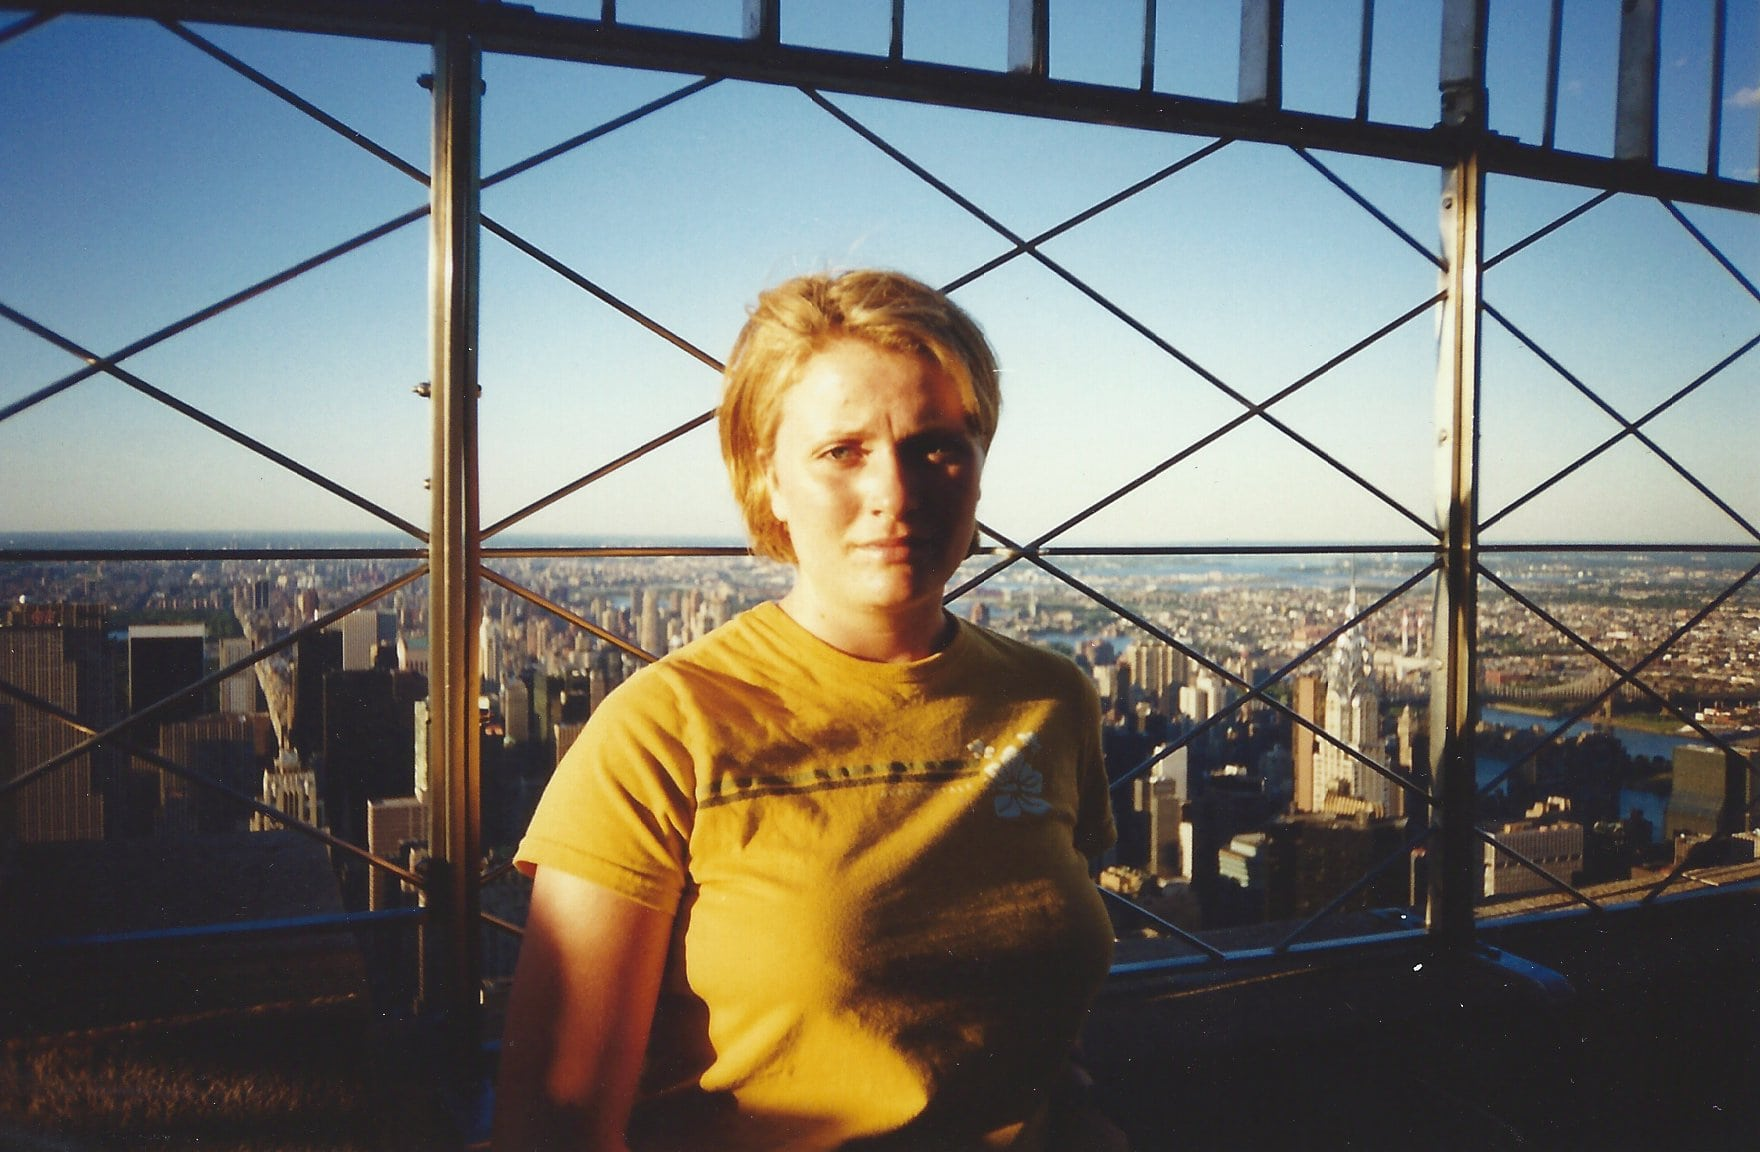 Standing at the top of the Empire State Building in 2000